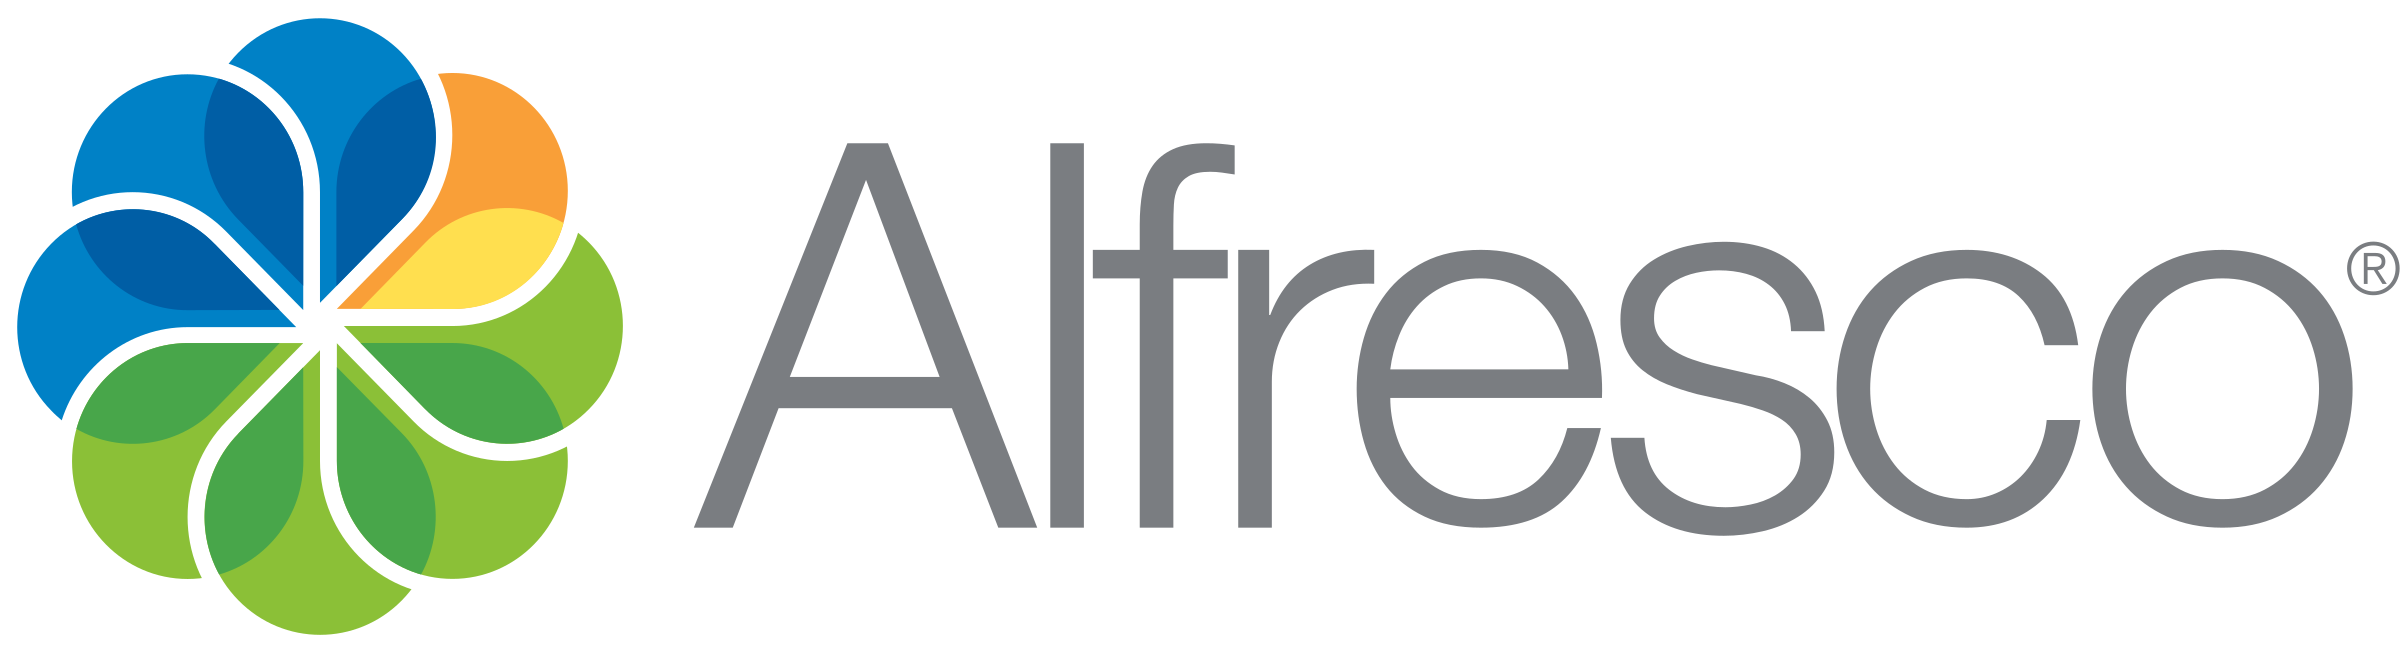 alfresco logo png transparent